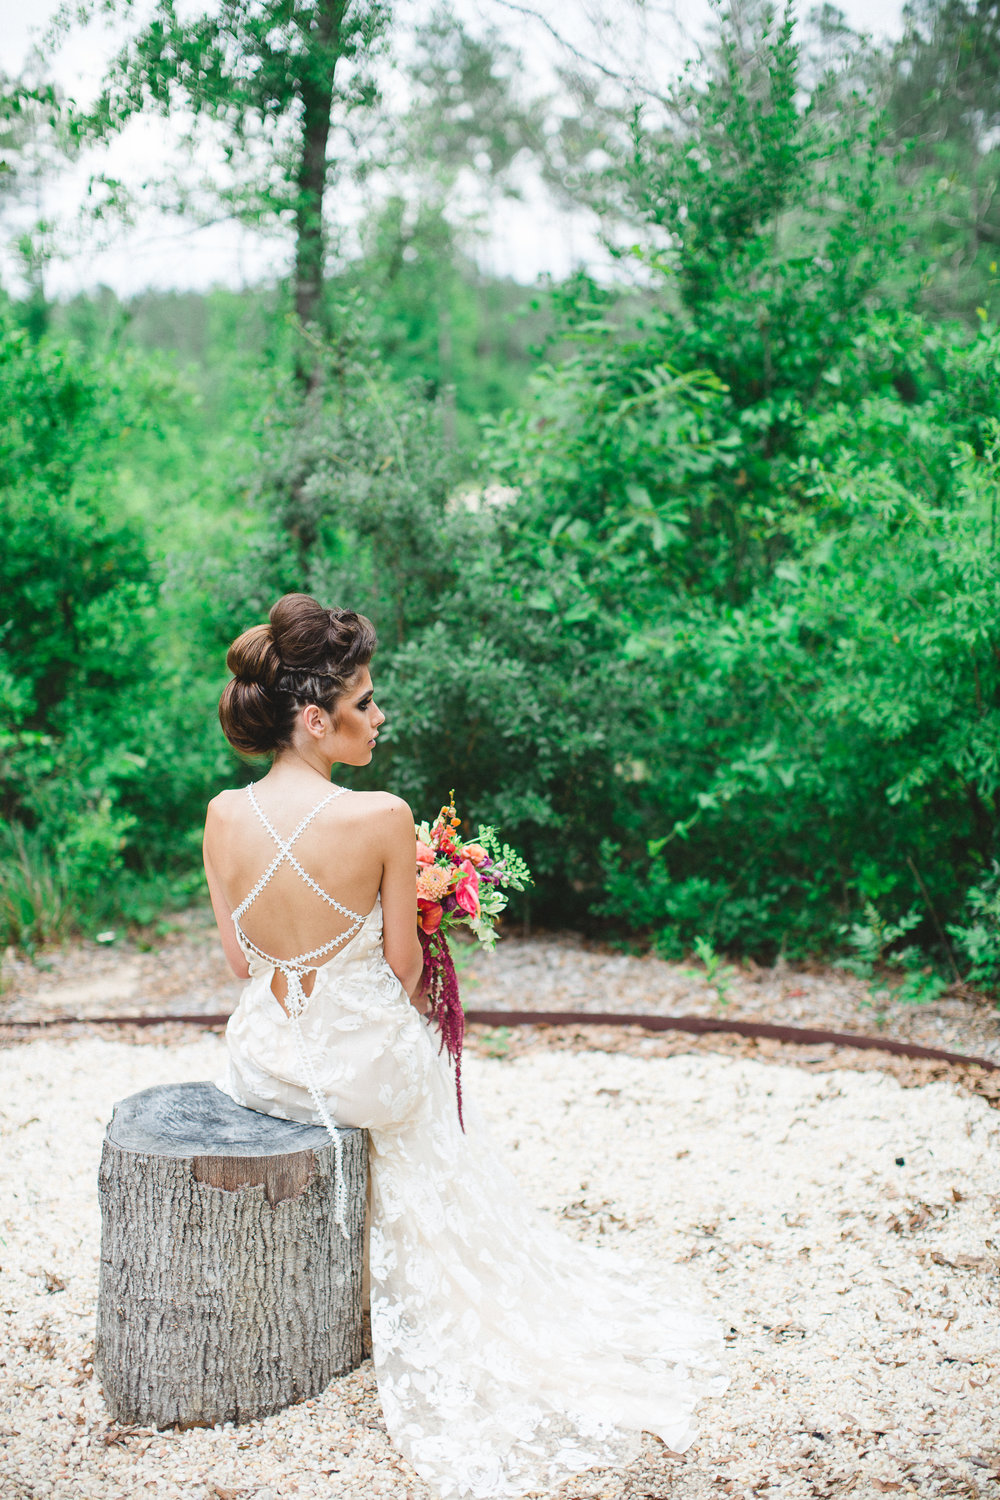 izzy-hudgins-photography-emily-burton-designs-ivory-and-beau-bridal-boutique-daughters-of-simone-sonje-jenny-yoo-bridesmaids-glamping-wedding-boho-wedding-outdoor-wedding-coldwater-gardens-wedding-savannah-bridal-boutique-savannah-wedding-planner-13.jpg